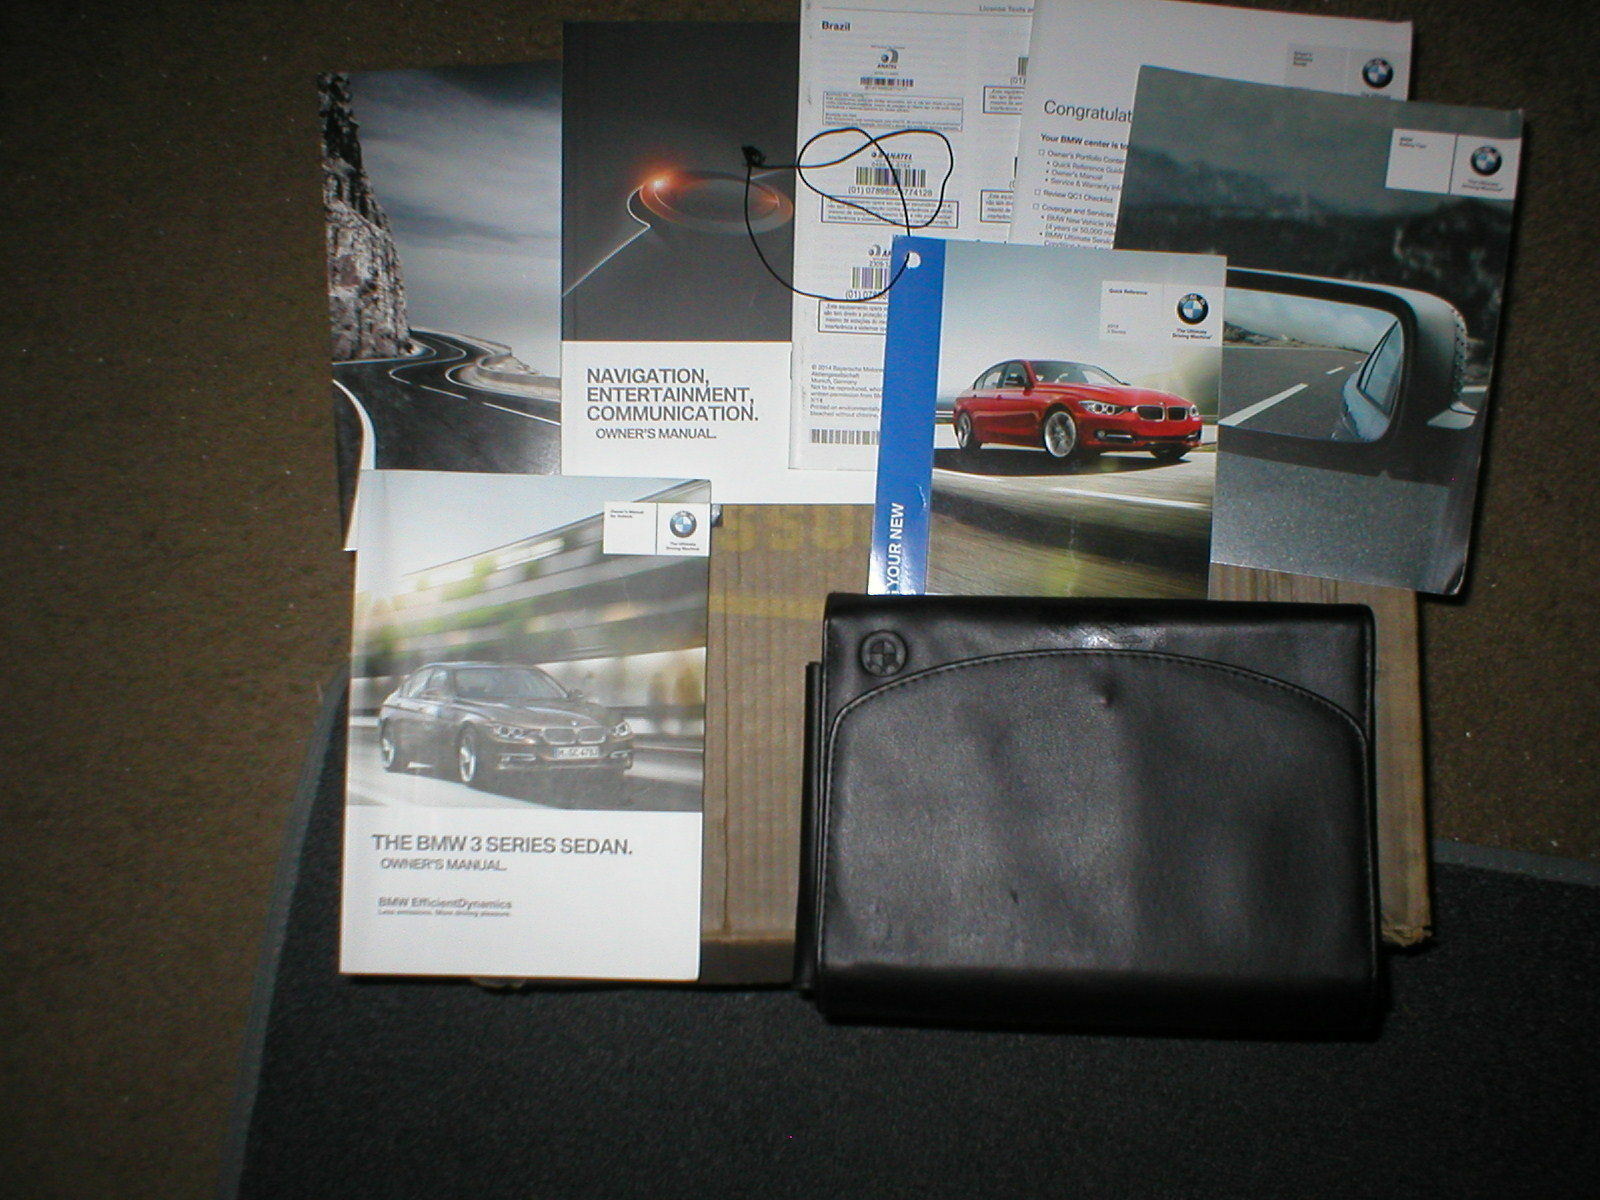 2013 BMW 3 Series Sedan owners manual set with cover case and navigation manual